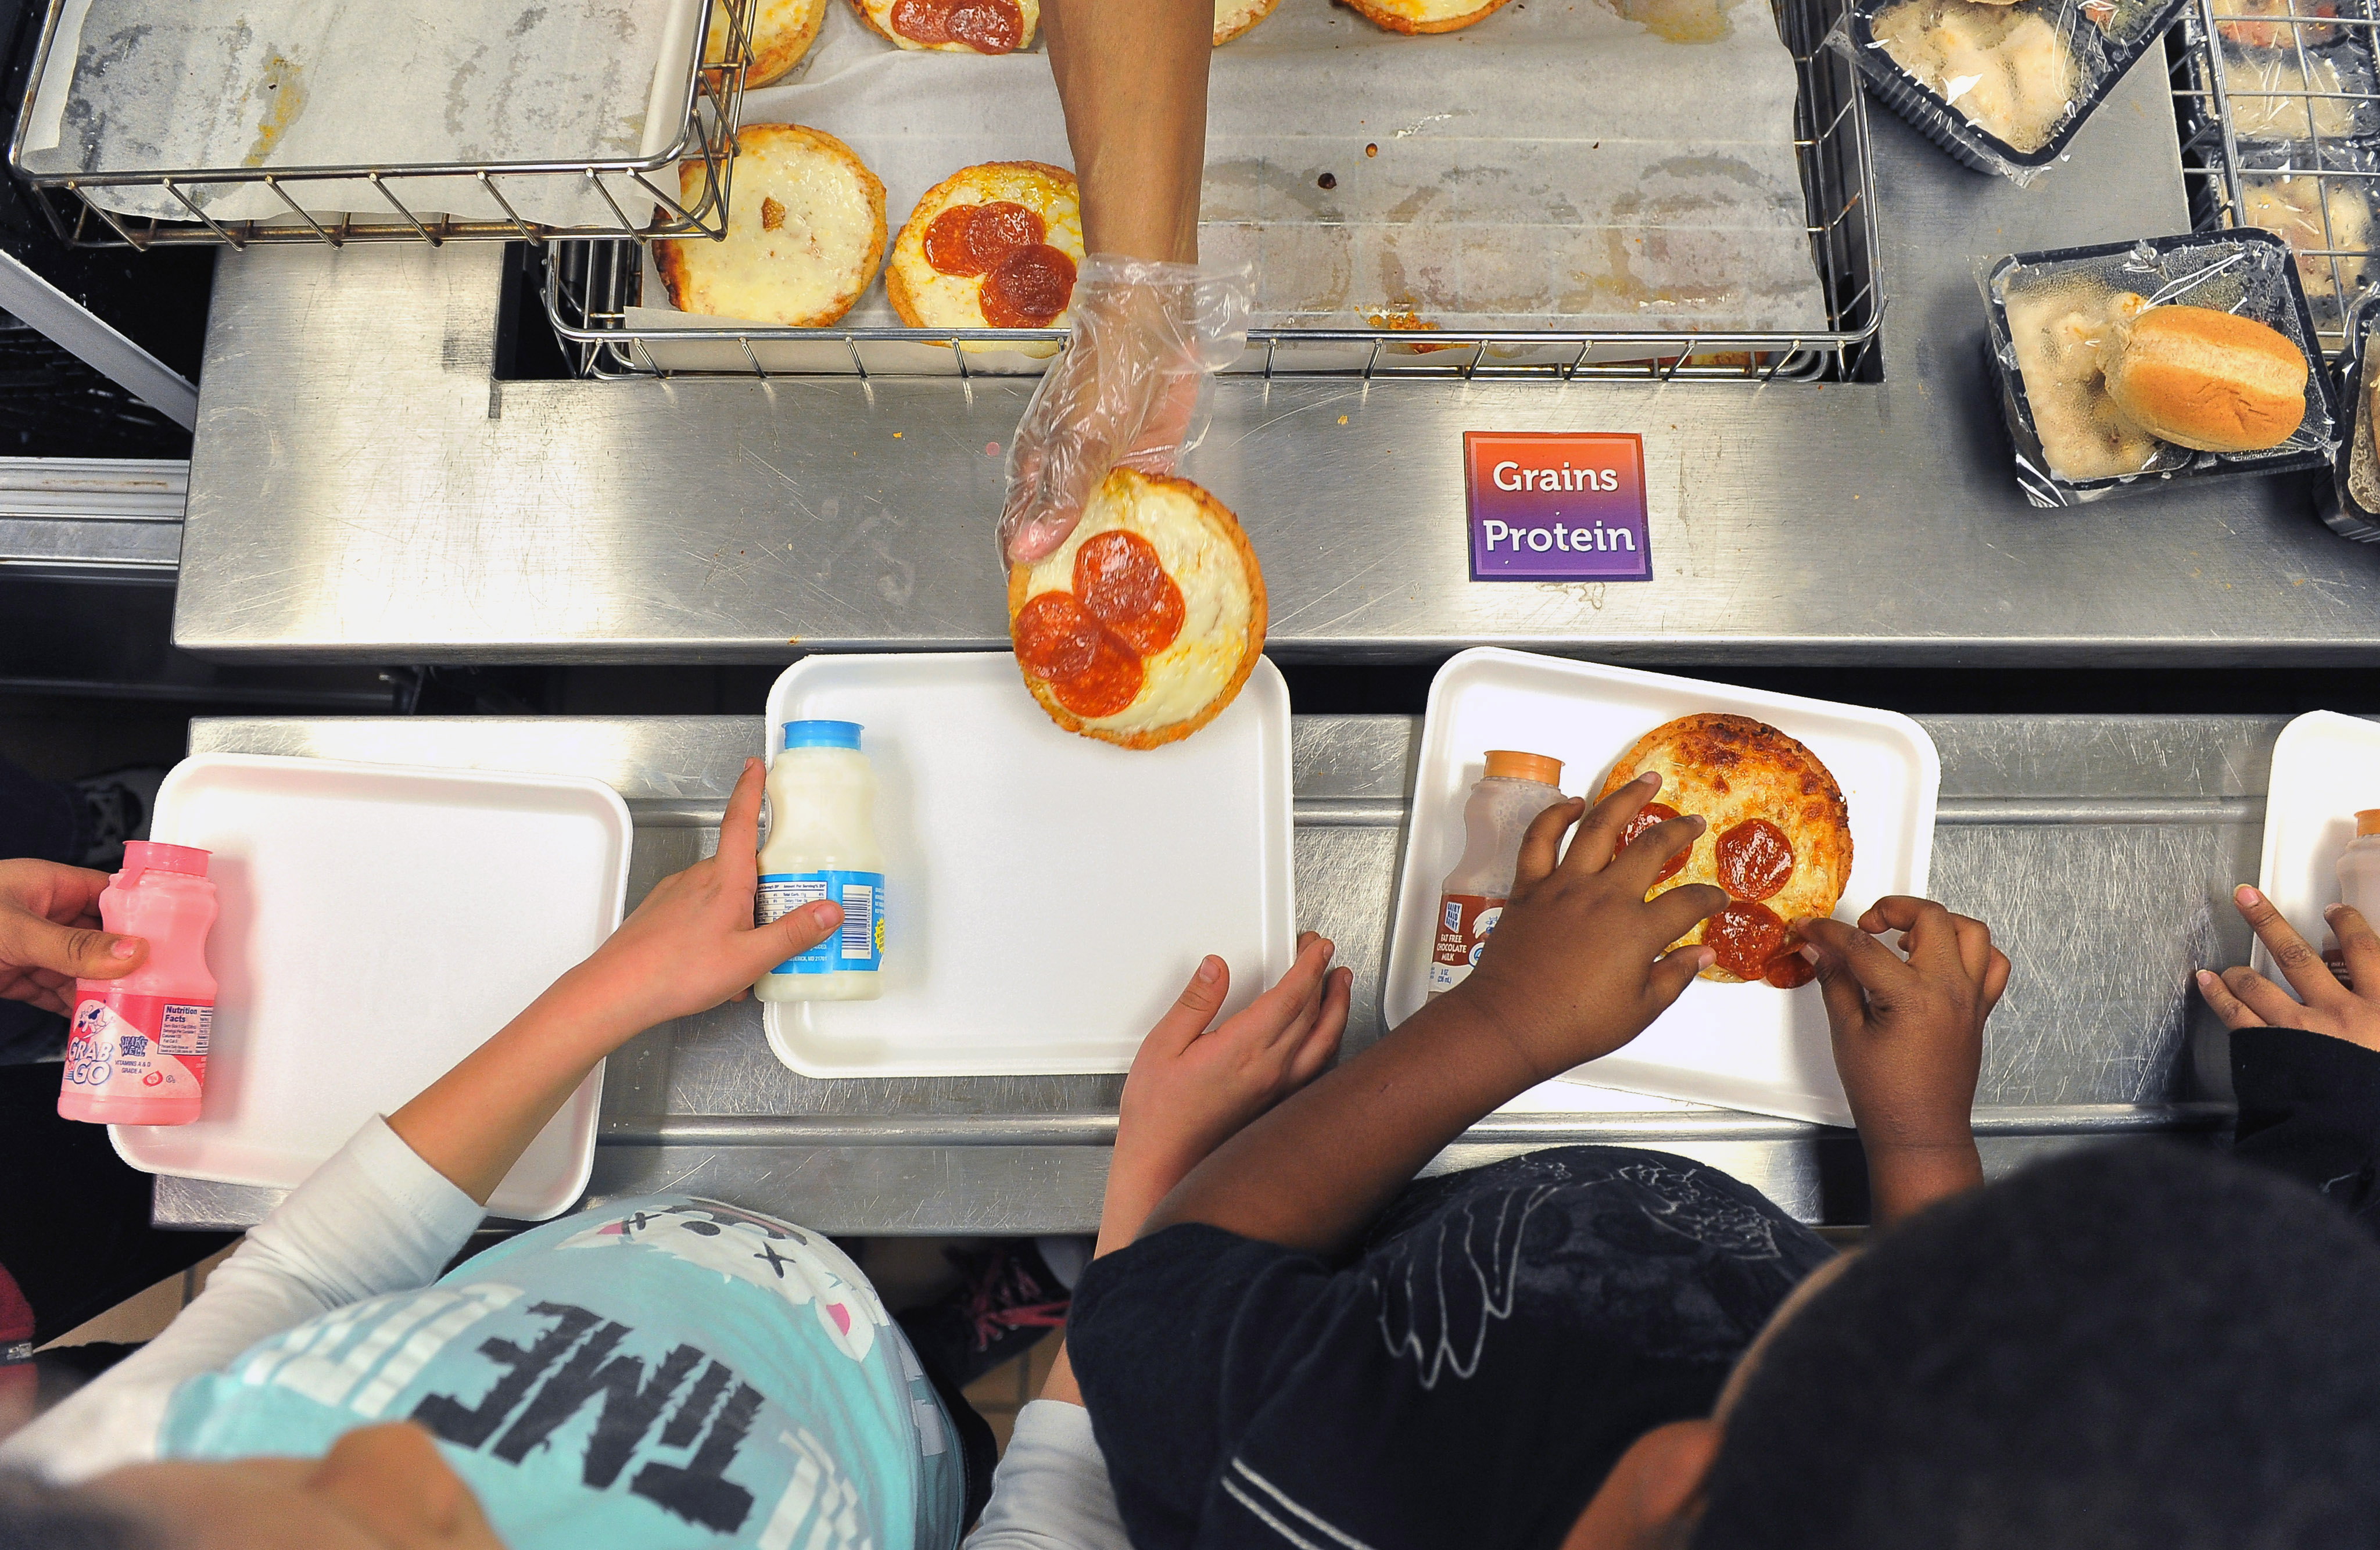 editorial to school lunches When students can't pay, most schools offer a free stigma sandwich but not in the edmonds district.